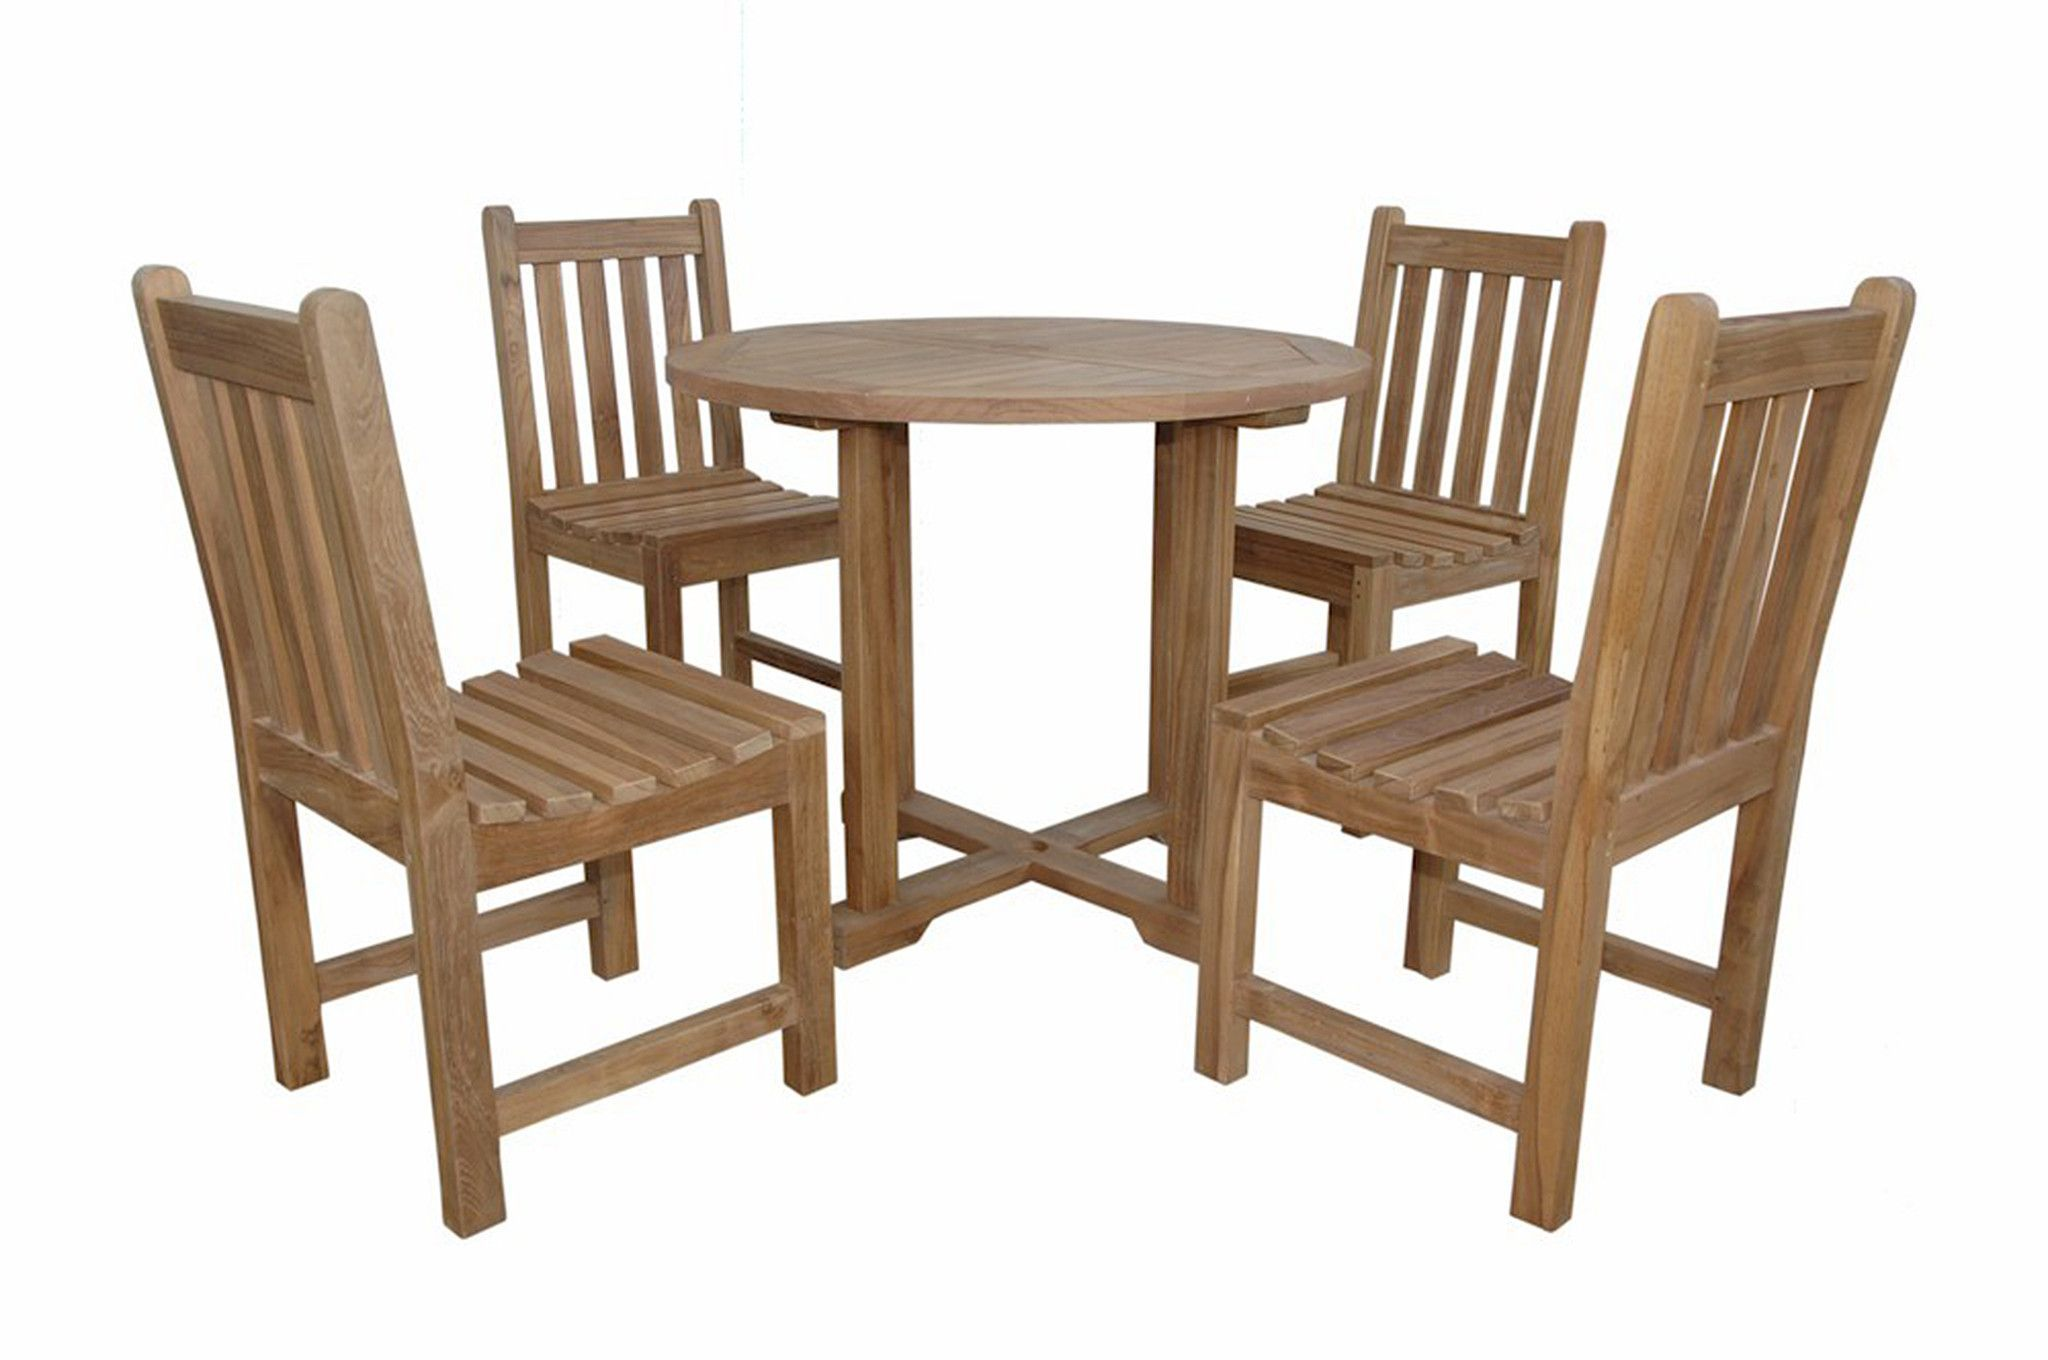 Round dining table and chairs for 4  Anderson Teak  Montage